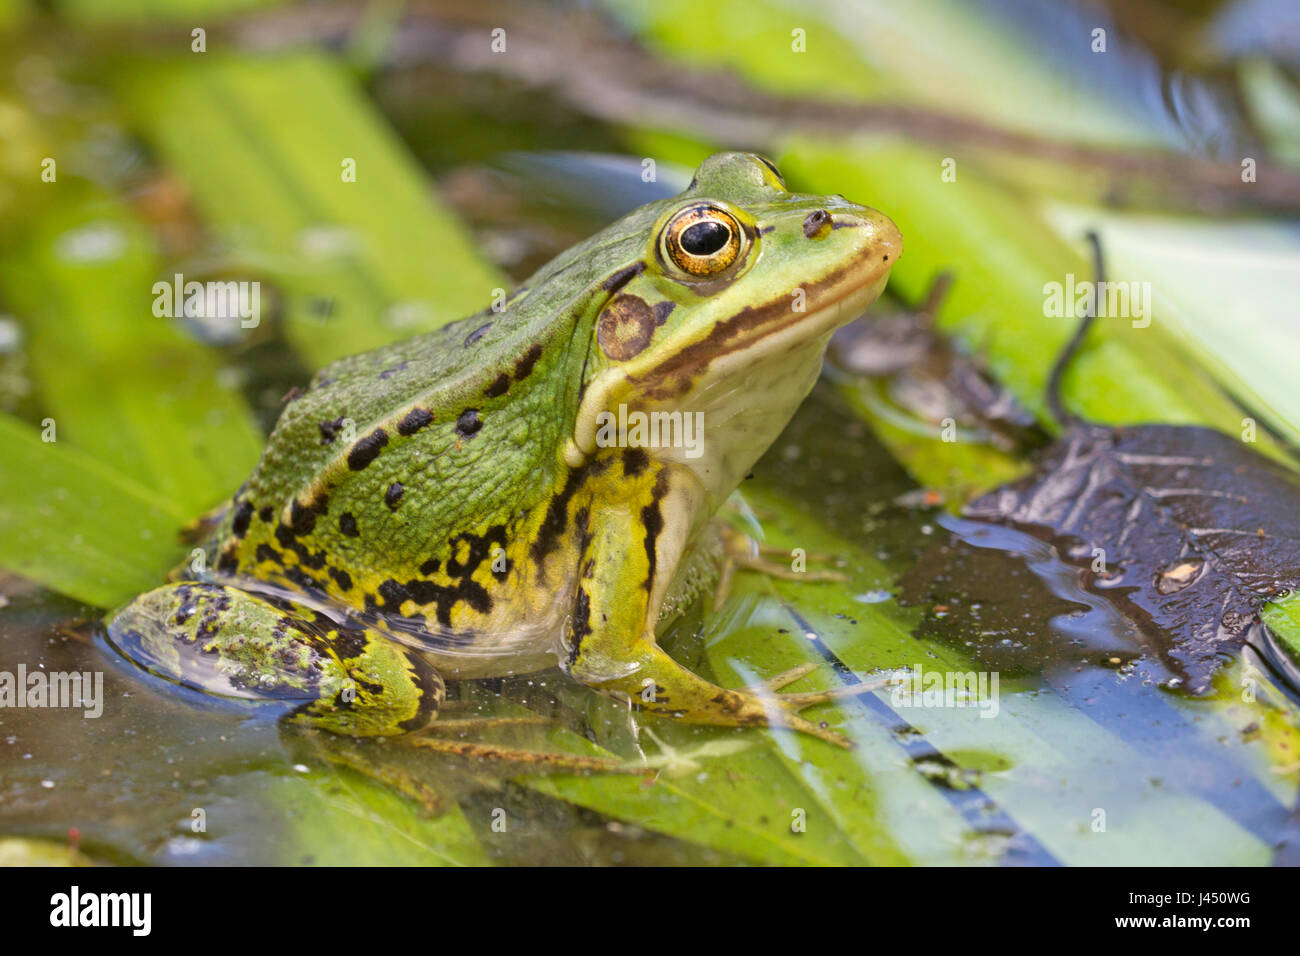 Pool frog resting on stalks in the water - Stock Image